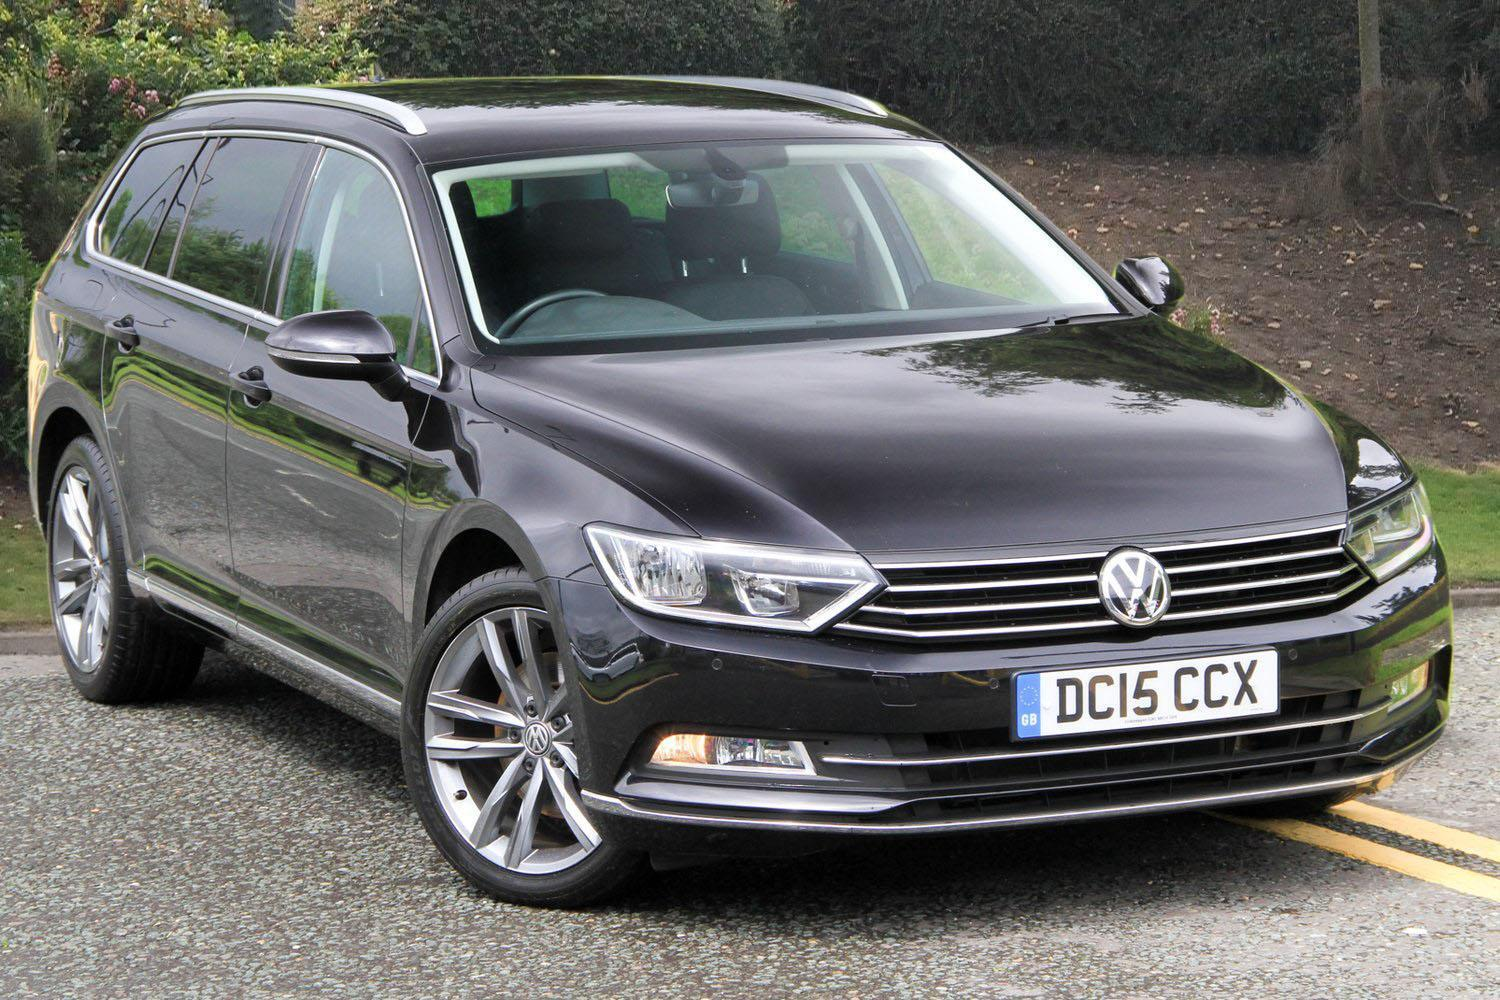 Used Volkswagen Passat 2 0 Tdi Gt 5dr Diesel Estate For